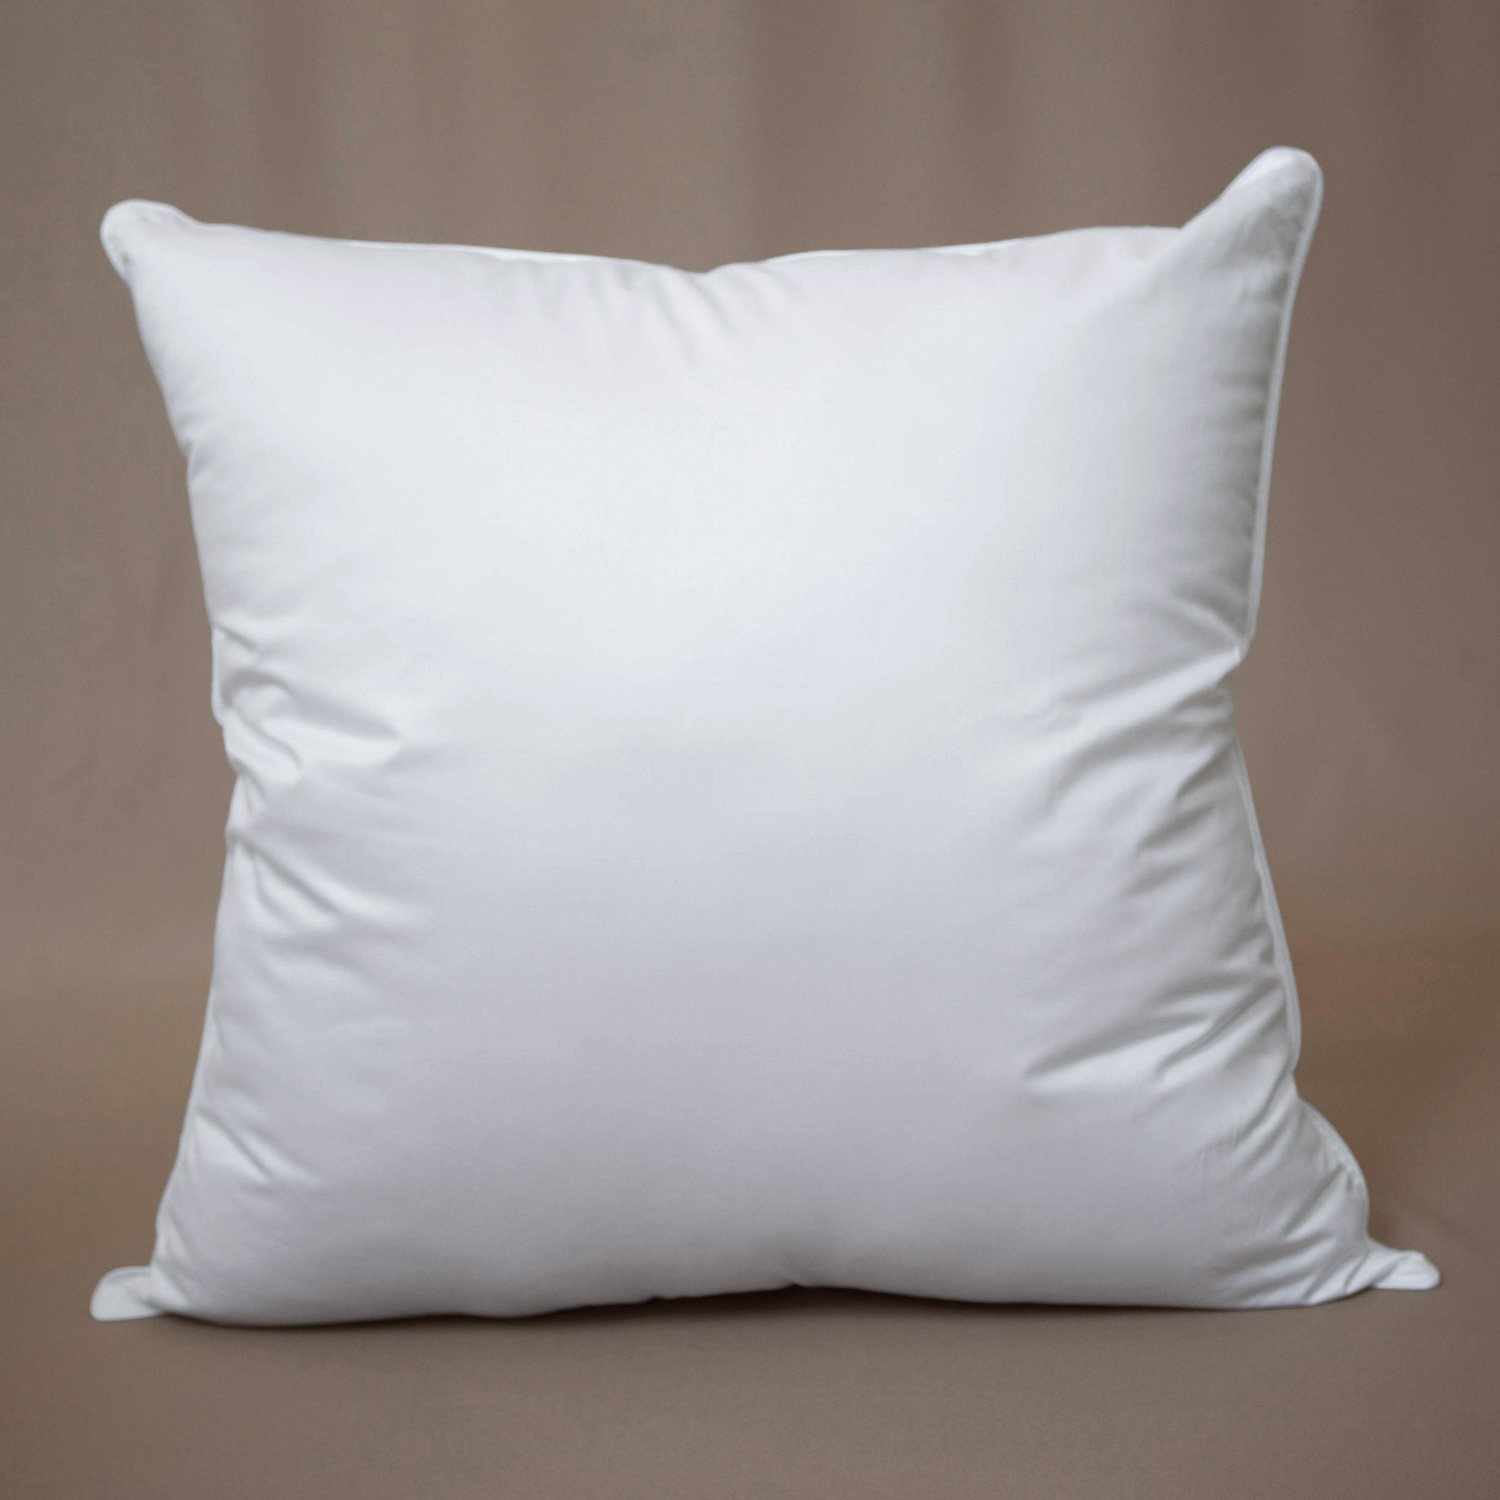 Amazon.com: Clearance Sale - Luxury Feather and Down Euro Pillow ...